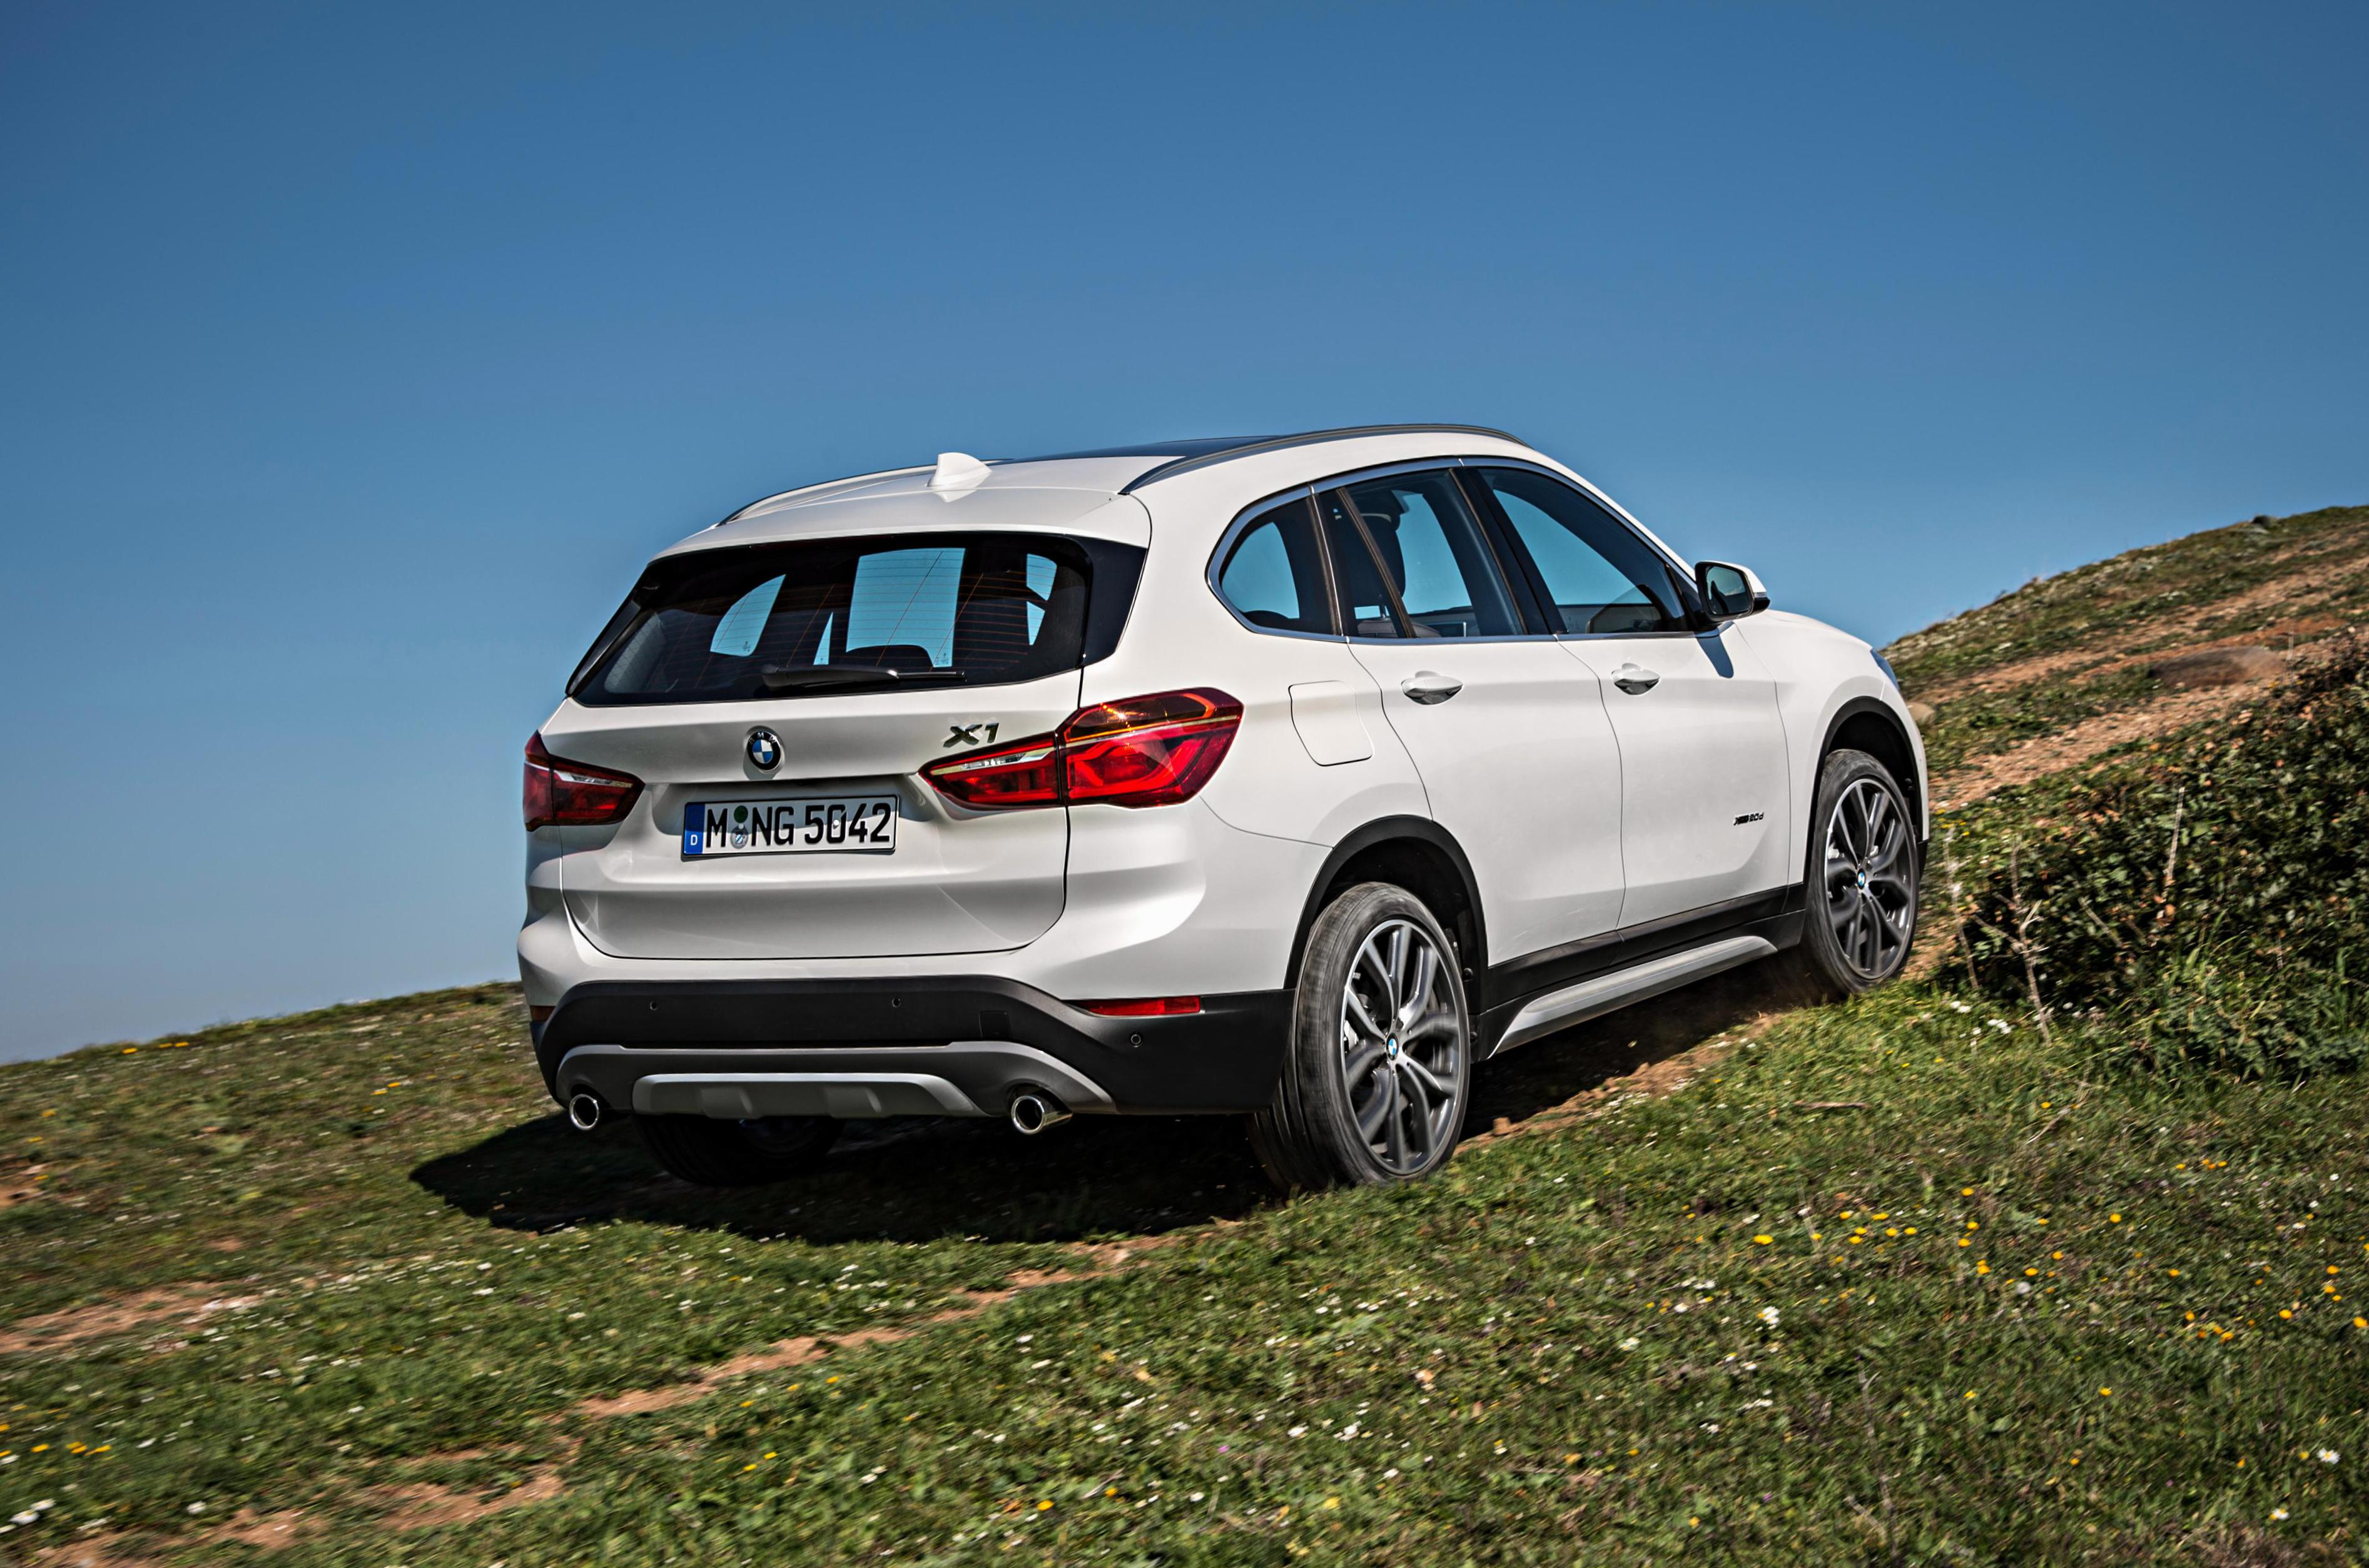 BMW X1 (F48) models hatchback